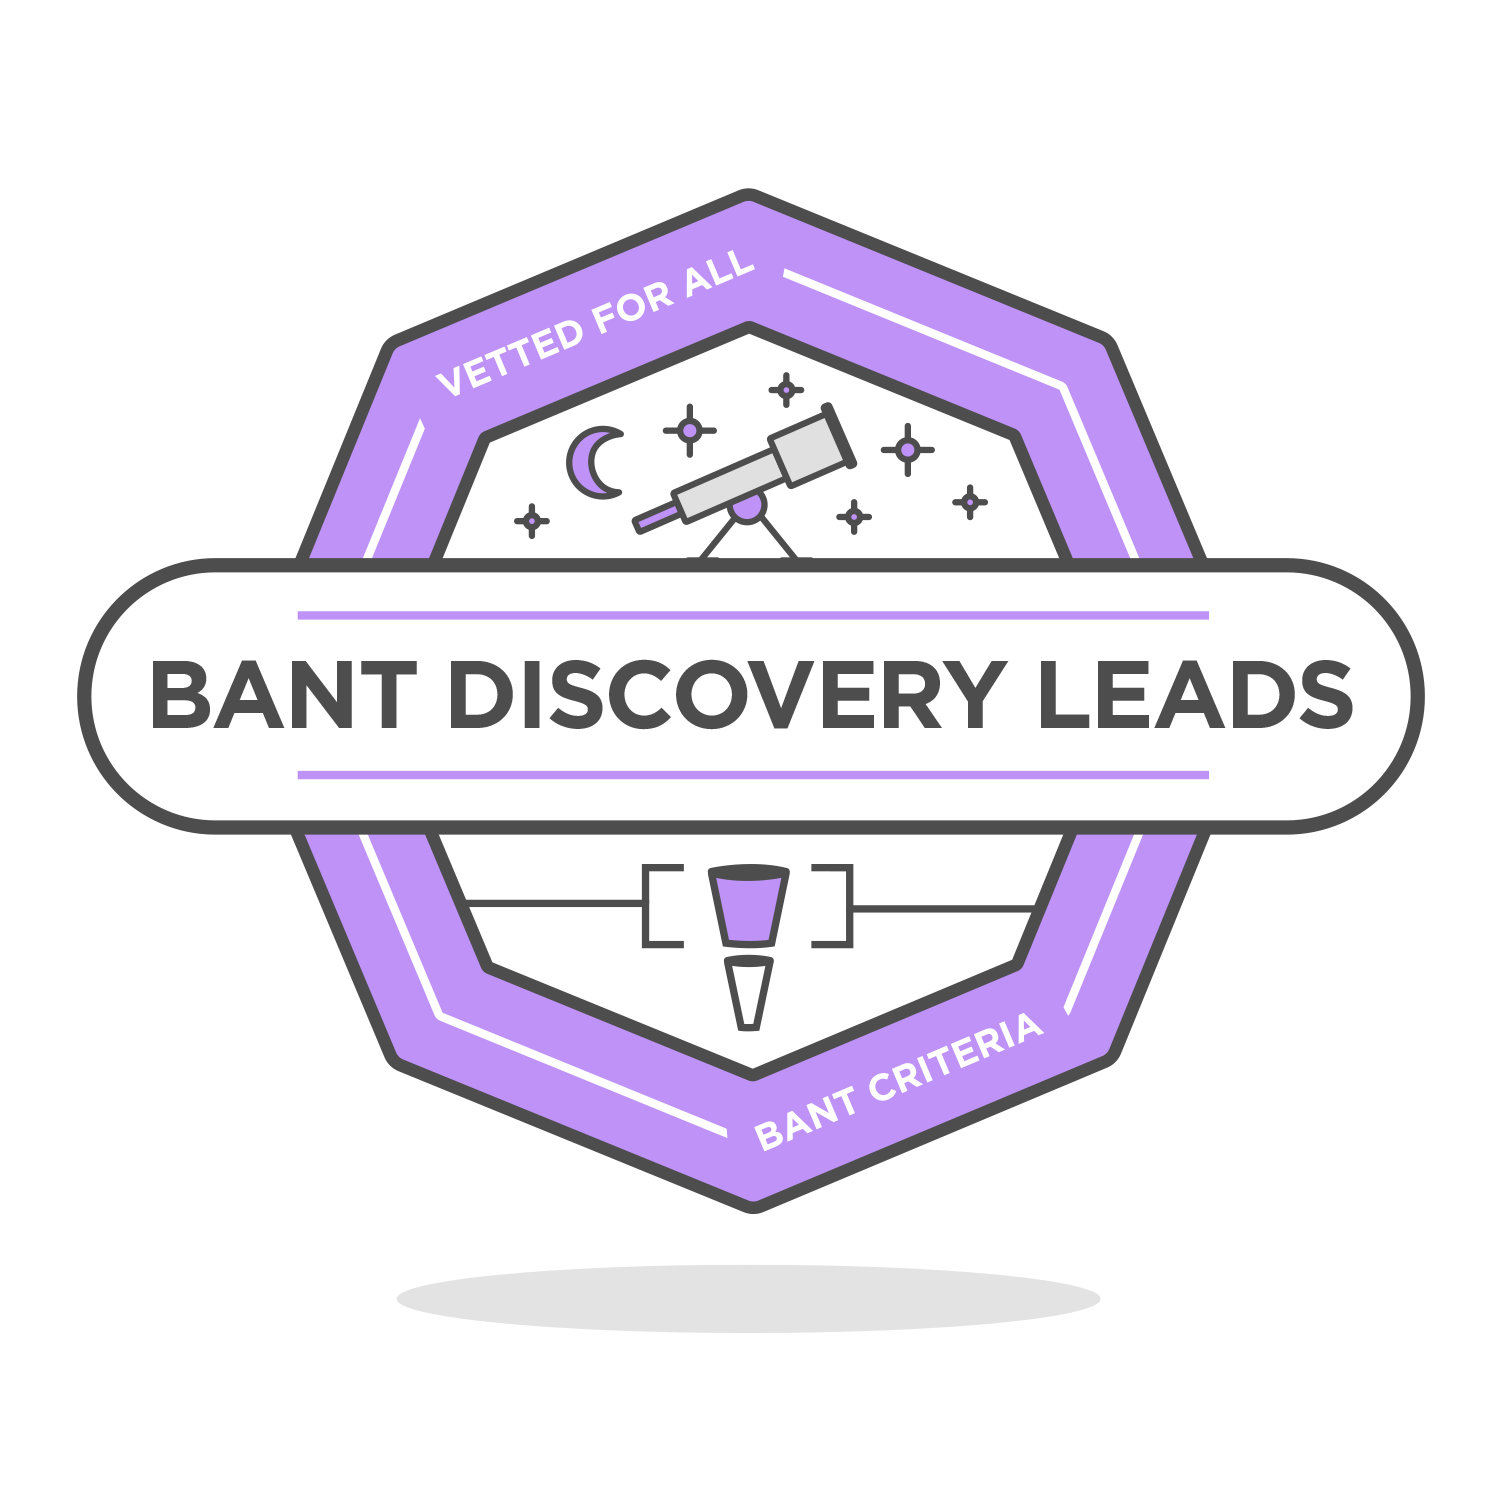 bant discovery leads badge icon